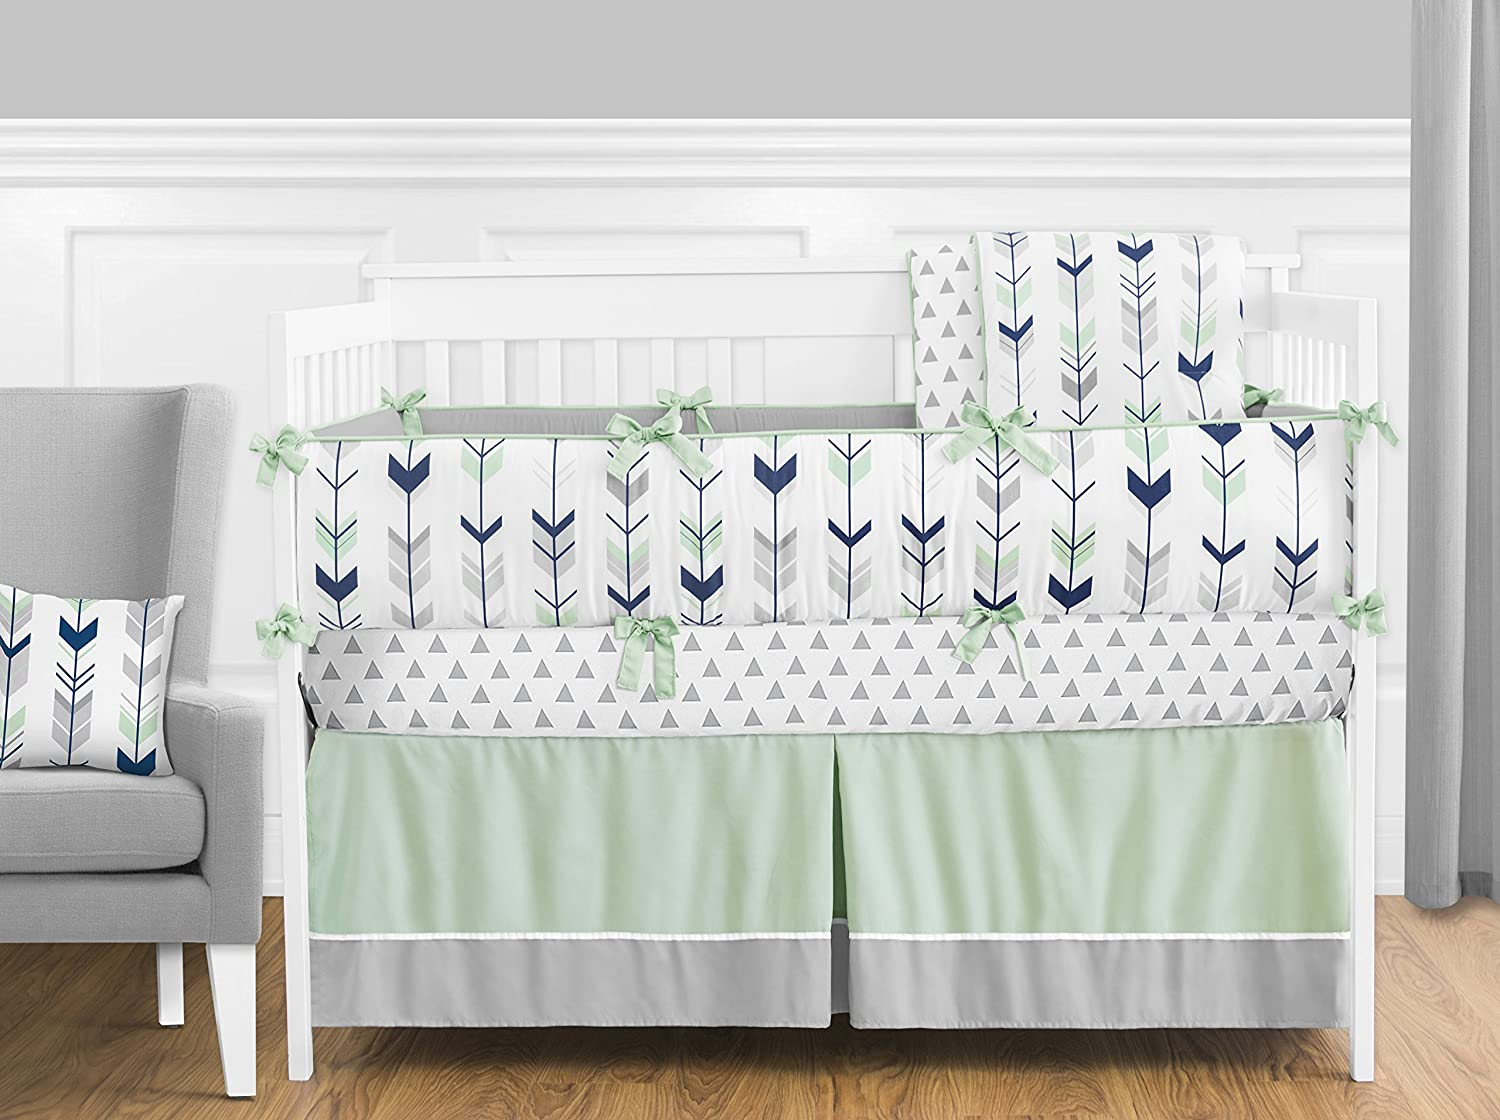 baby styles incredible nsyd nursery and deer bedding set for pic sets trends hunting crib